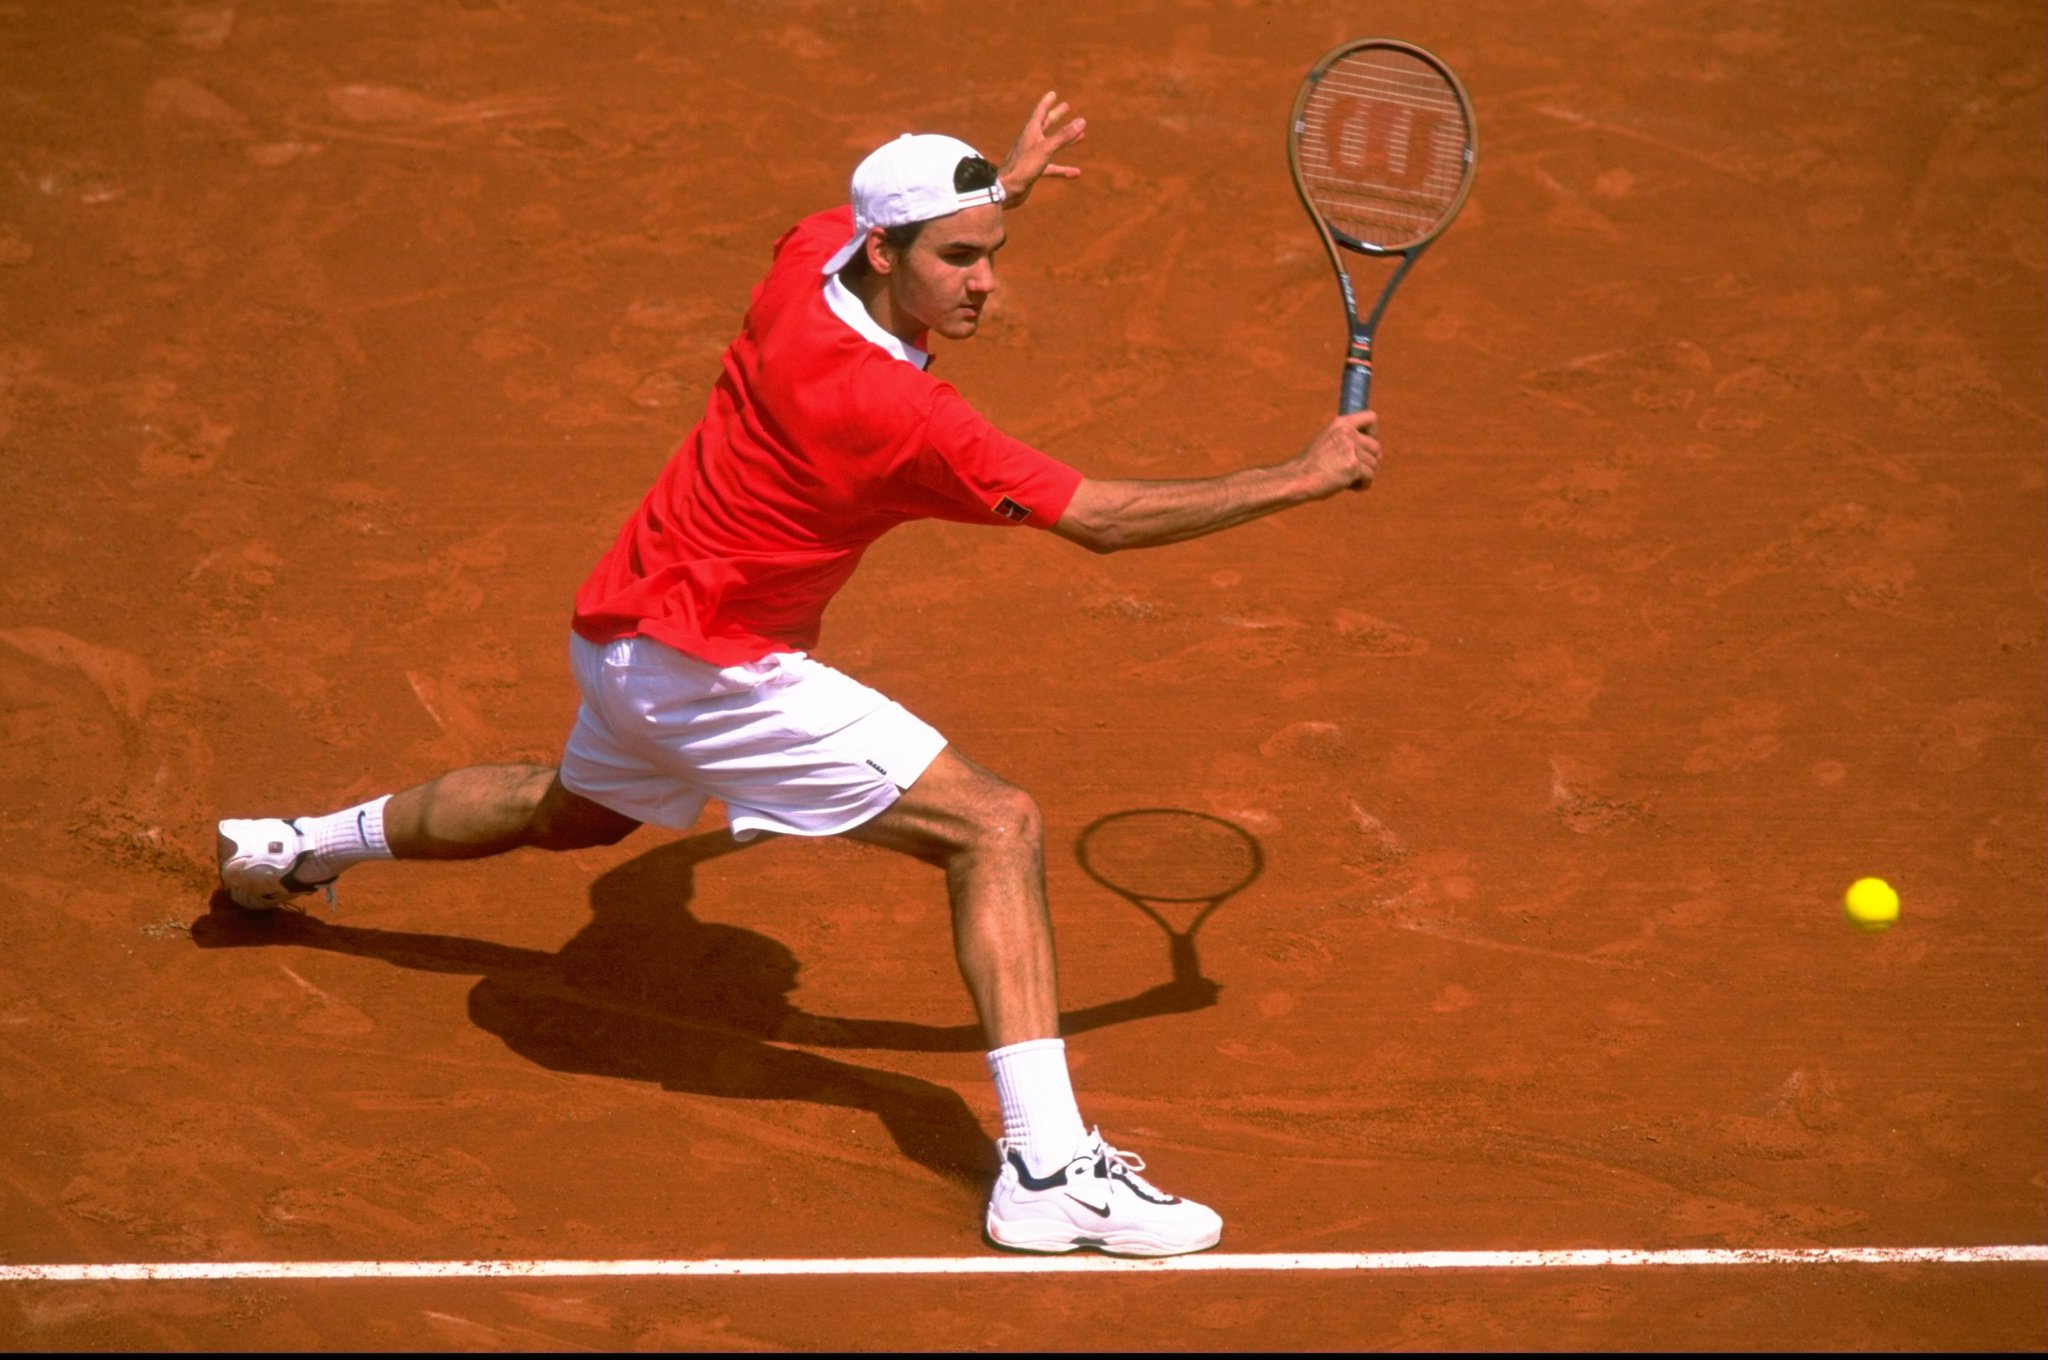 roger federer first french open at 17 with backward ball cap